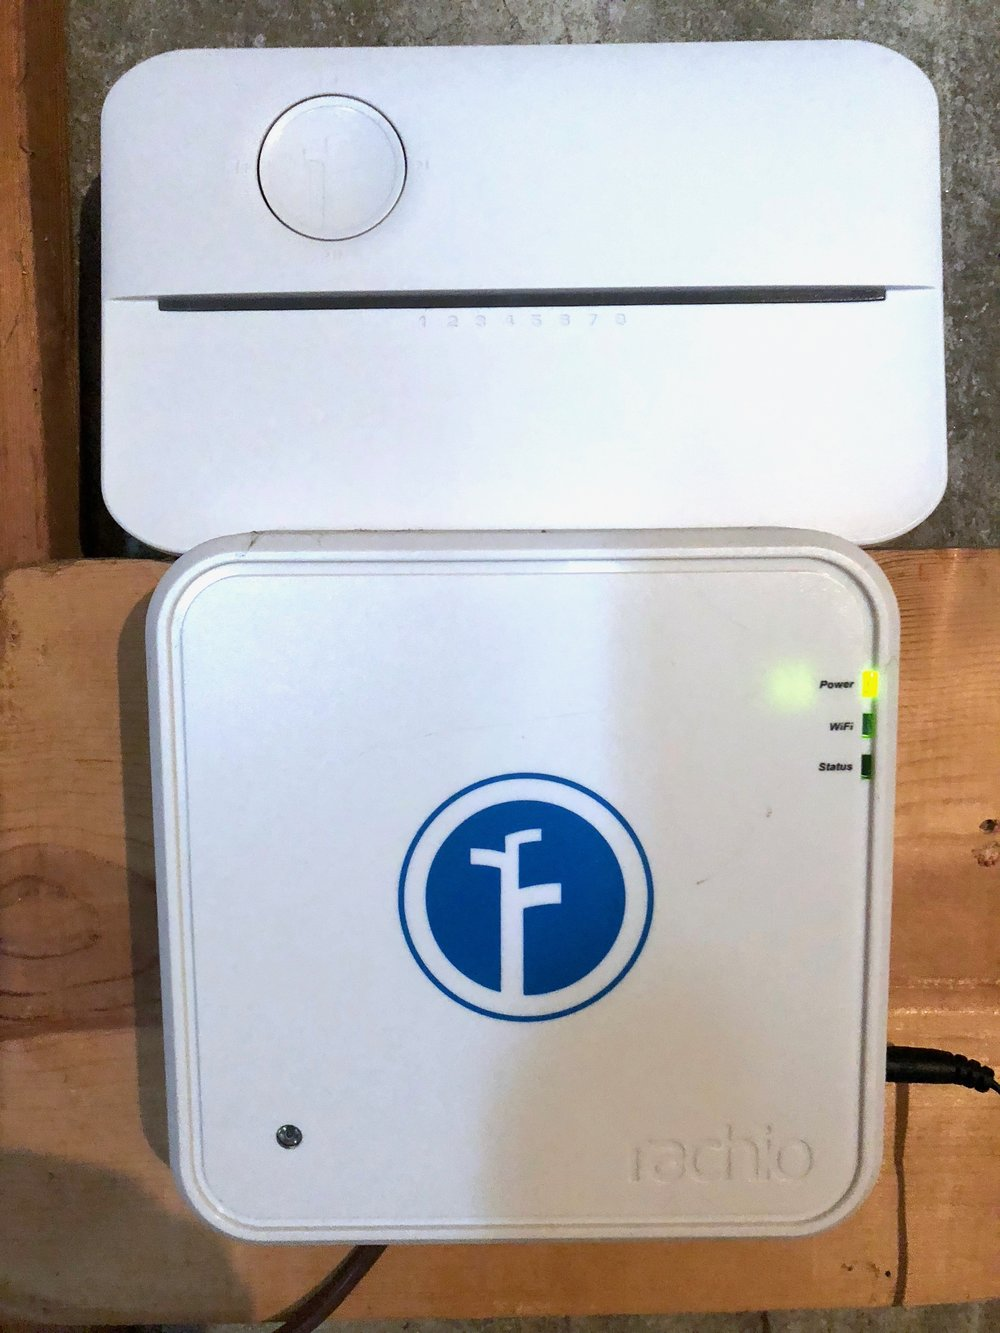 Rachio 3 (top) is half the size of the original Rachio (bottom). Photo by Steven Sande